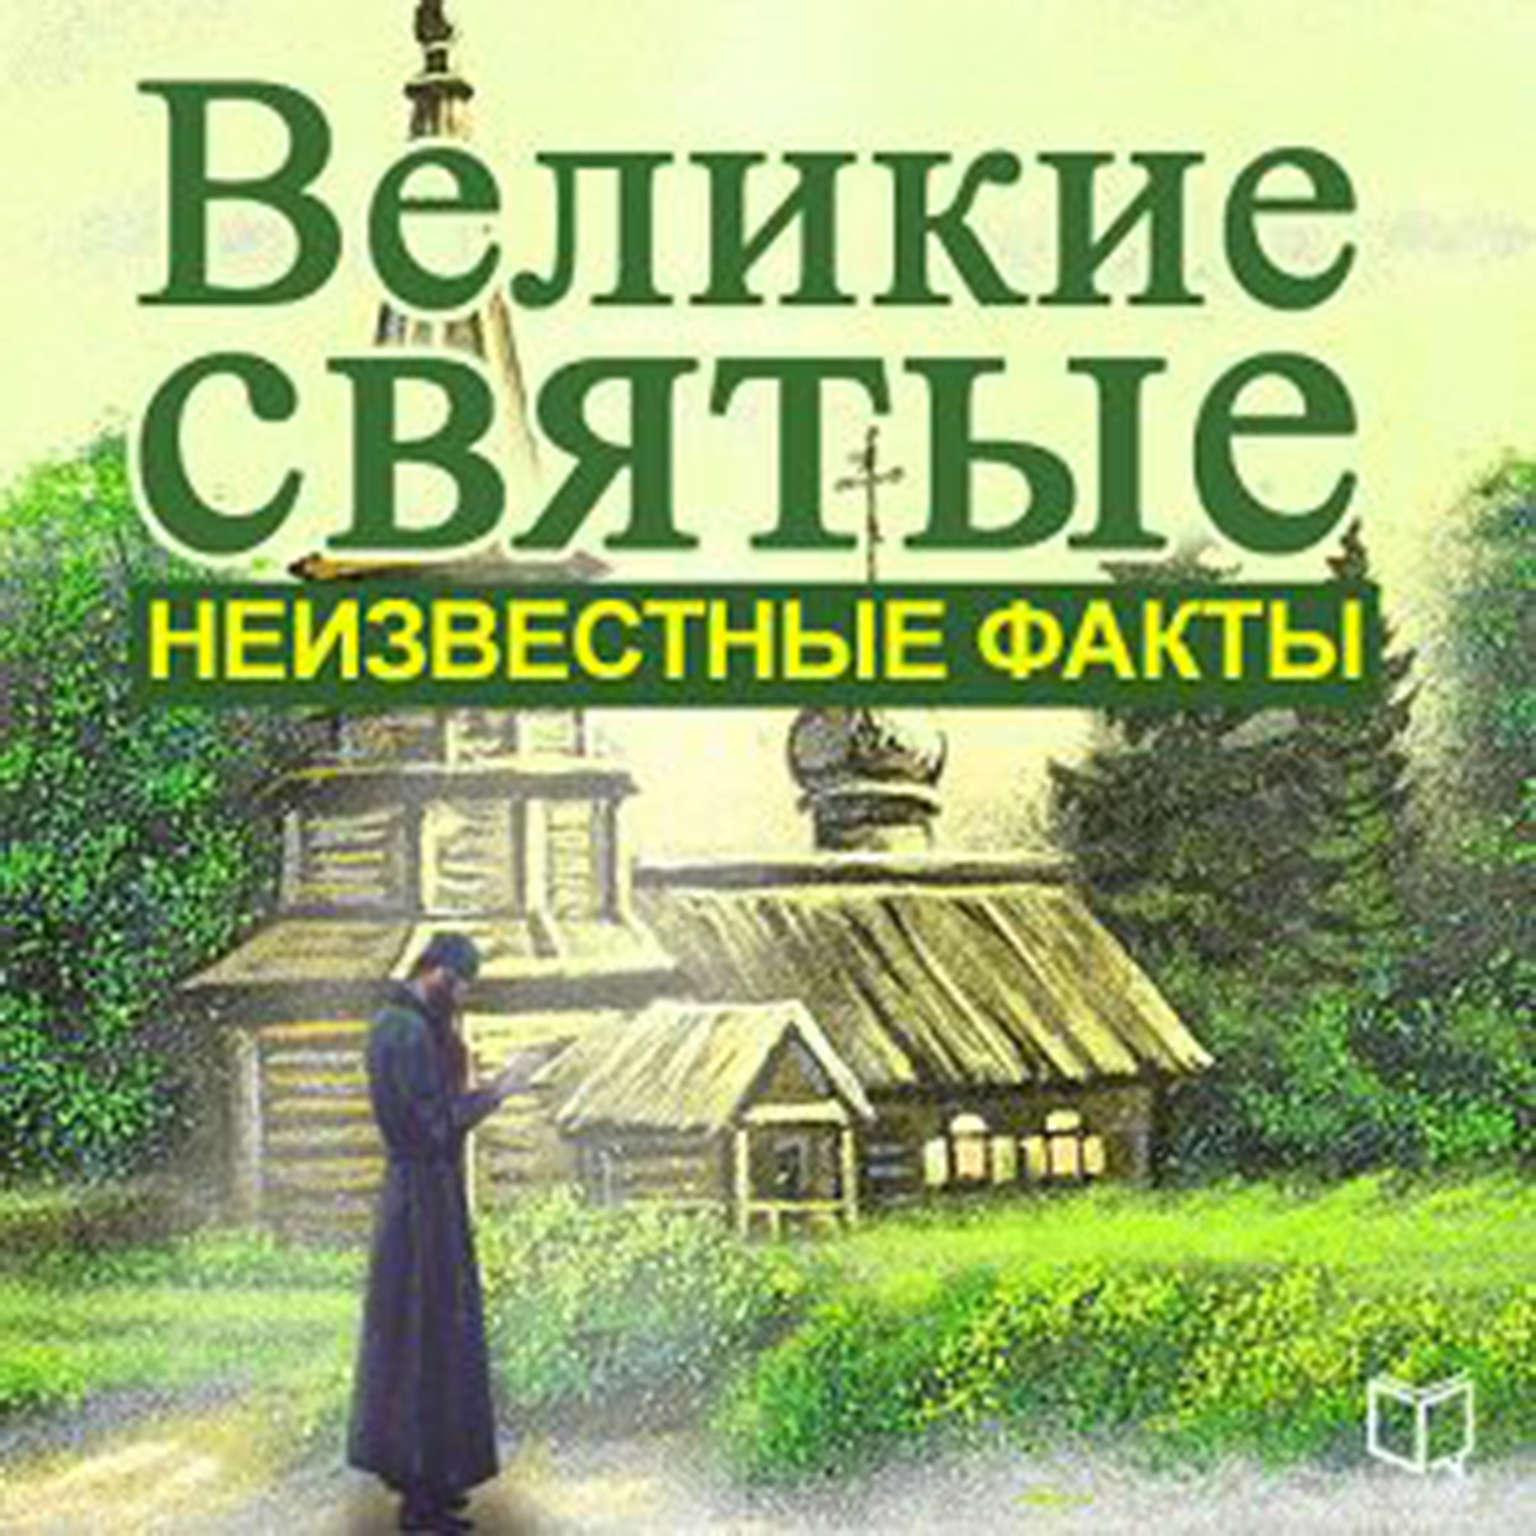 Great Saints: Unknown Facts [Russian Edition] Audiobook, by Aleksej Semenov